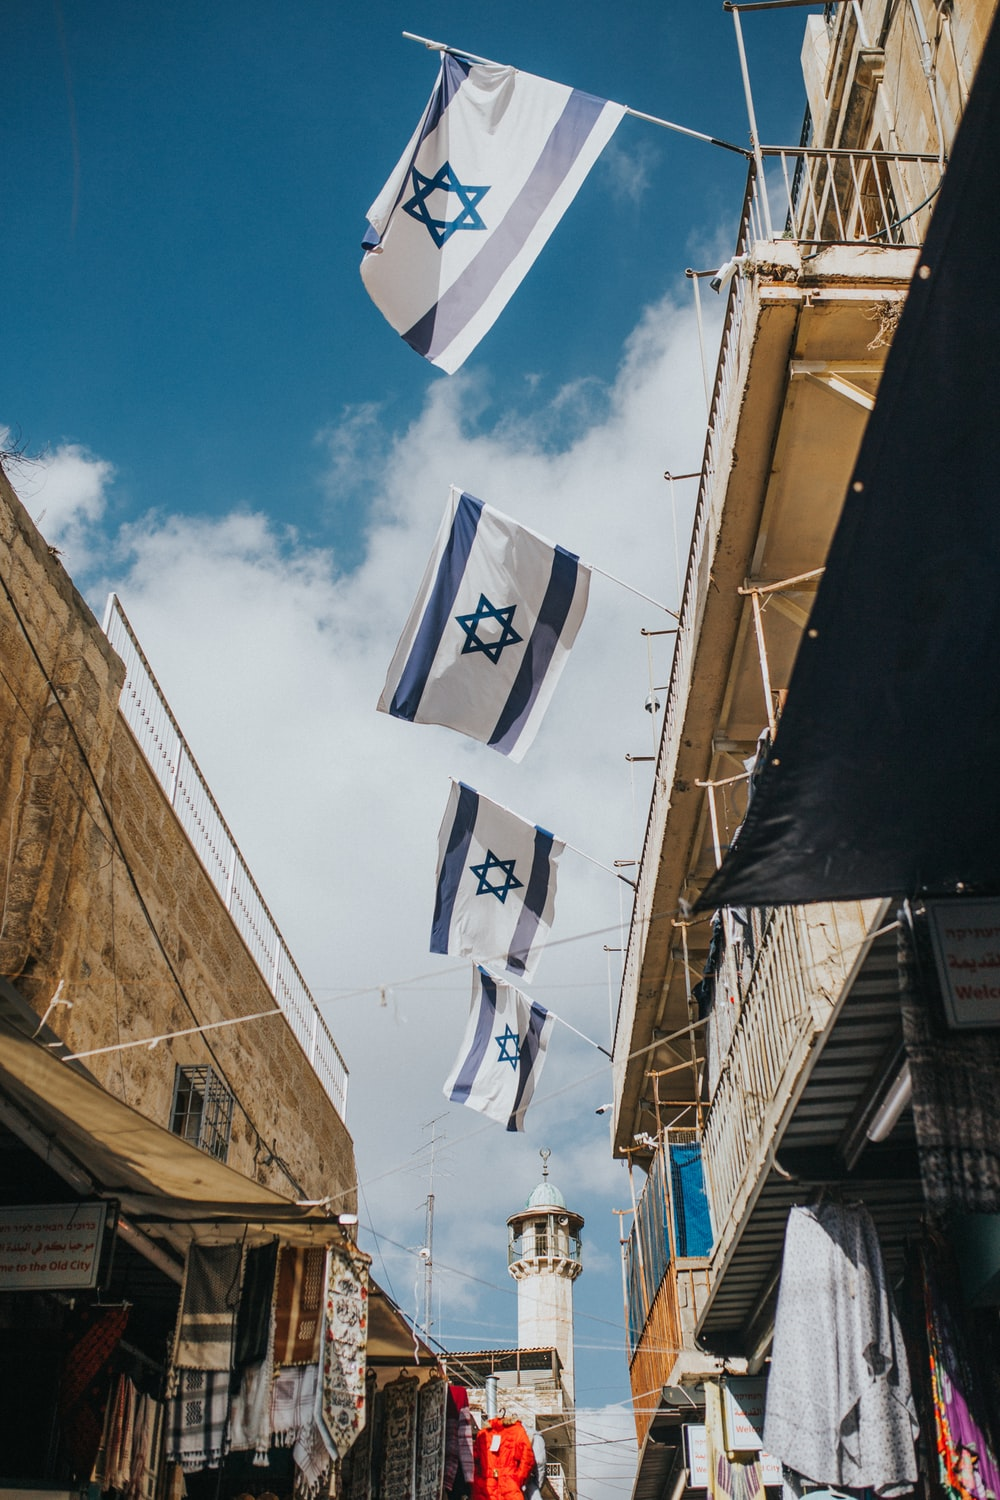 750 Stunning Israel Pictures Download Images on Unsplash 1000x1500